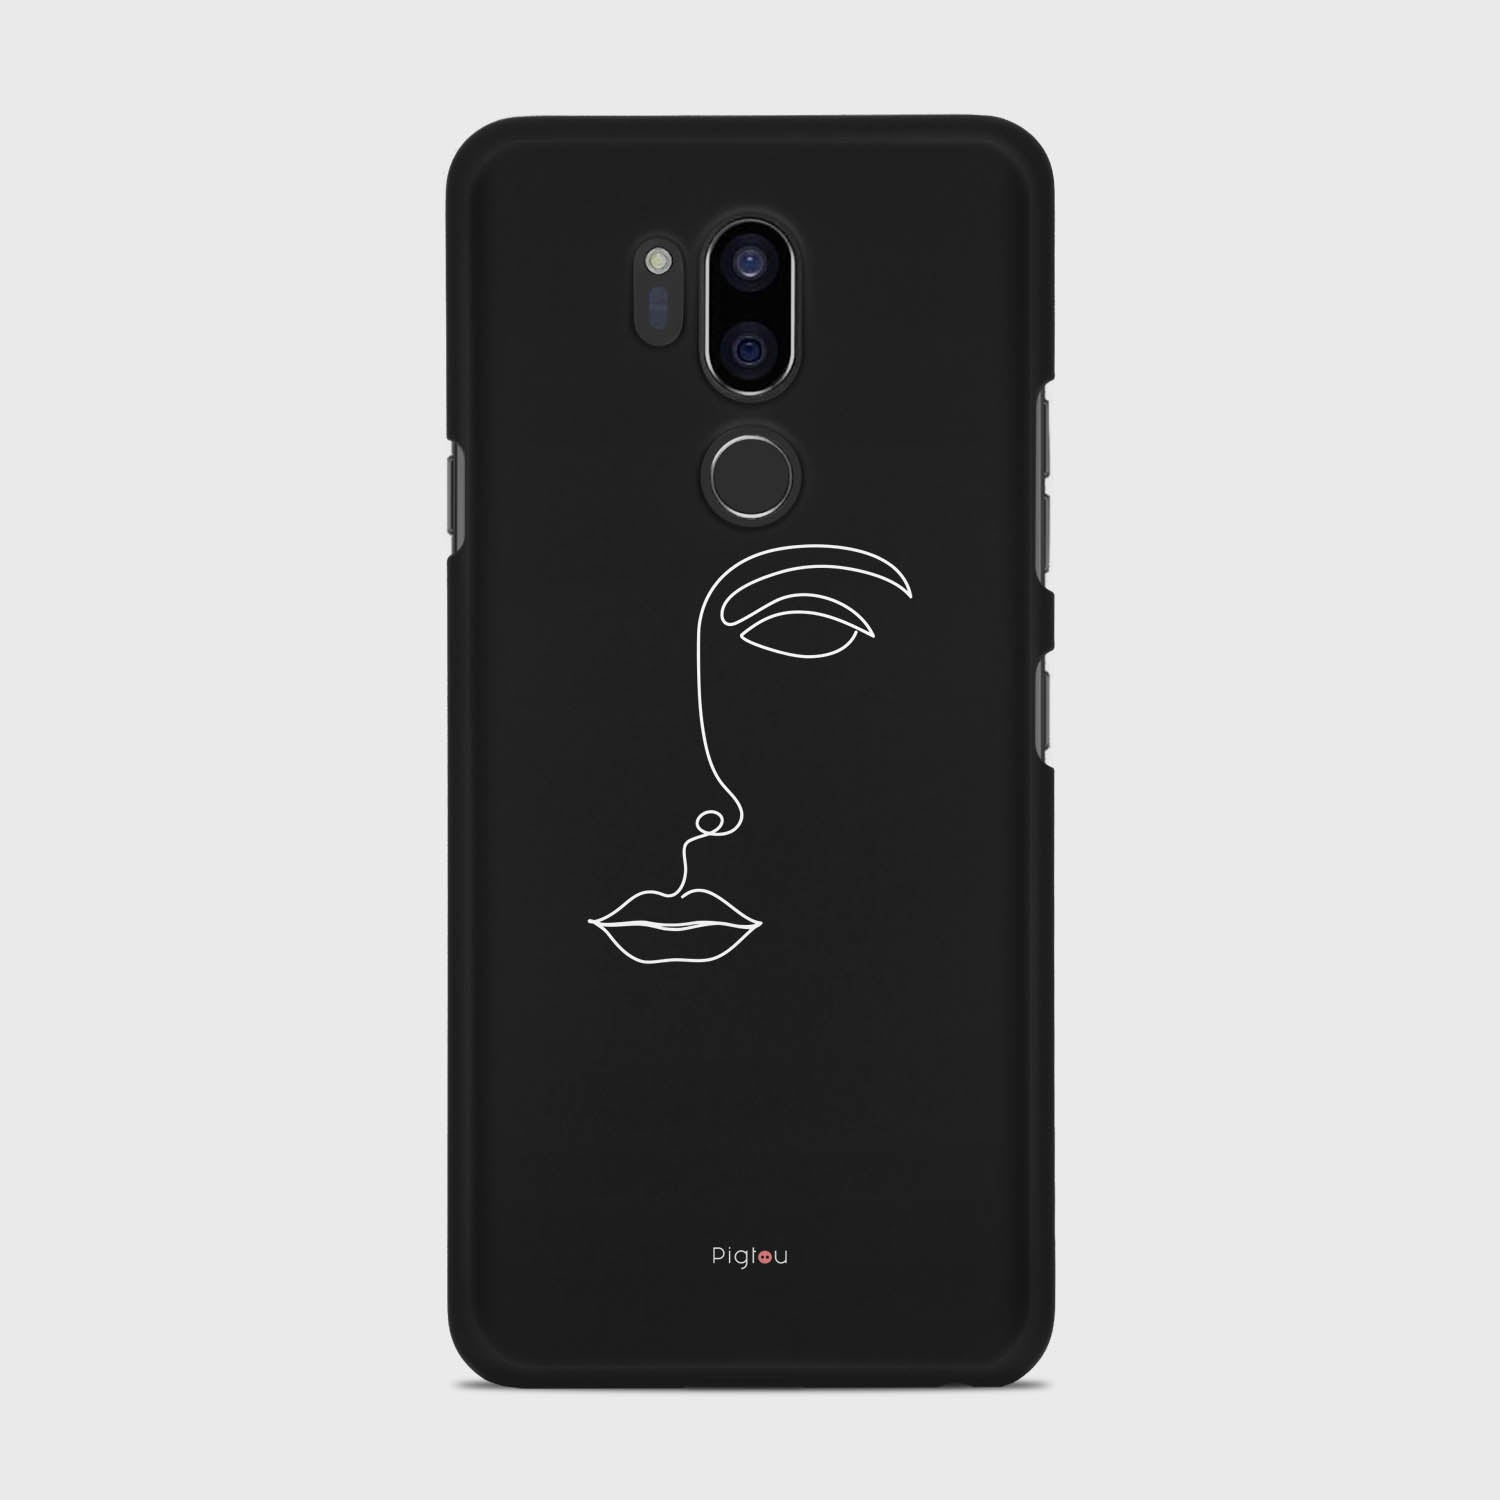 SILHOUETTE FACE LG G7 Thinq cases | Pigtou